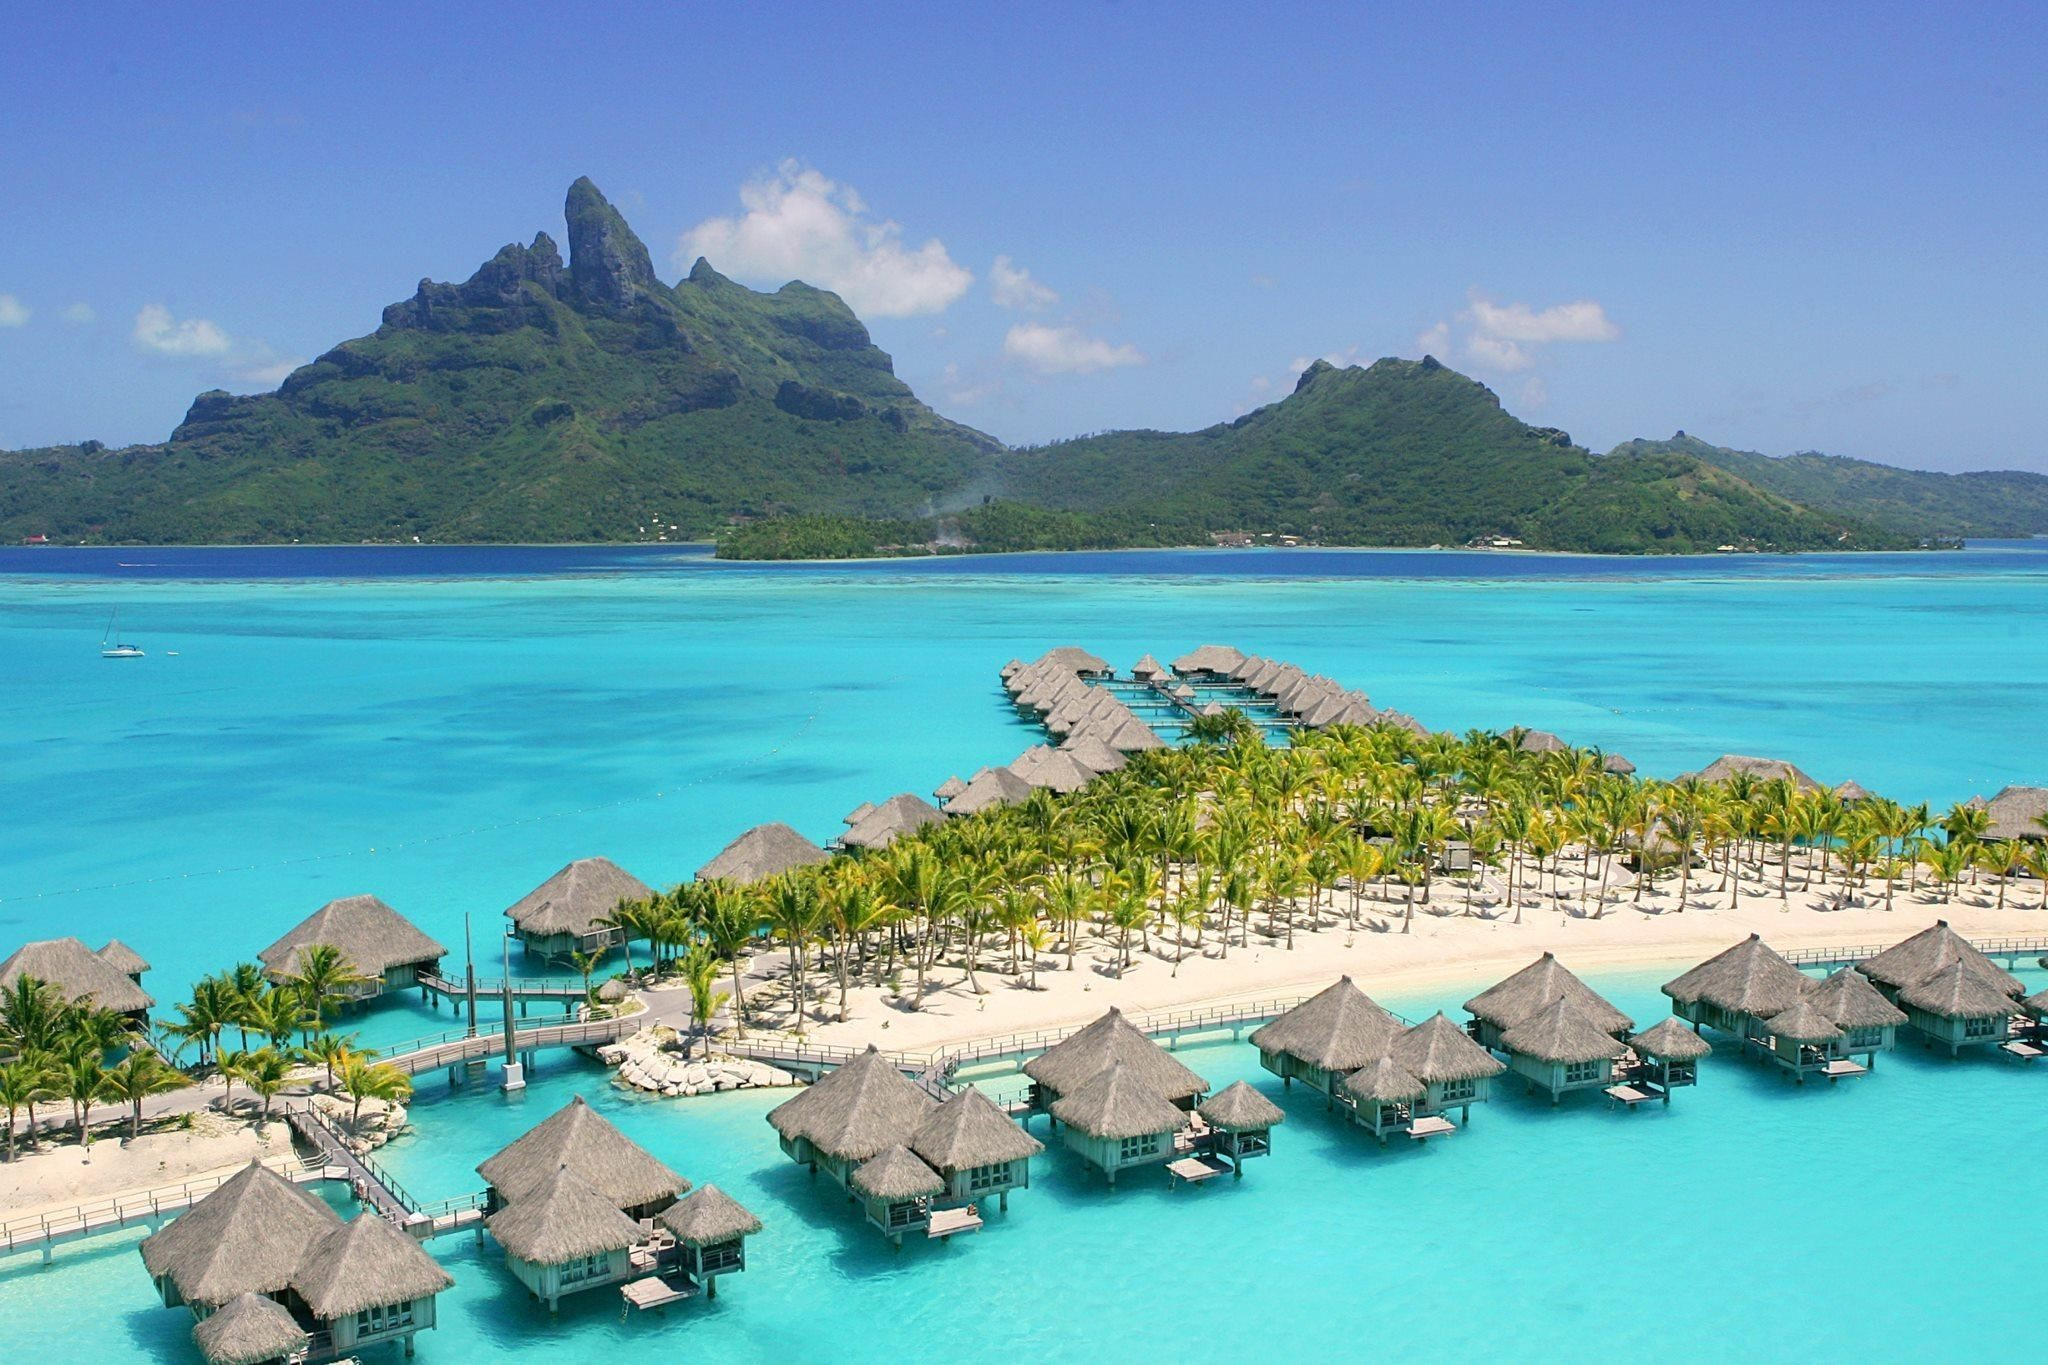 Res: 2048x1365, HQ  Resolution Bora Bora - Wallpapers and Pictures Wallpapers for  PC & Mac, Laptop, Tablet, Mobile Phone